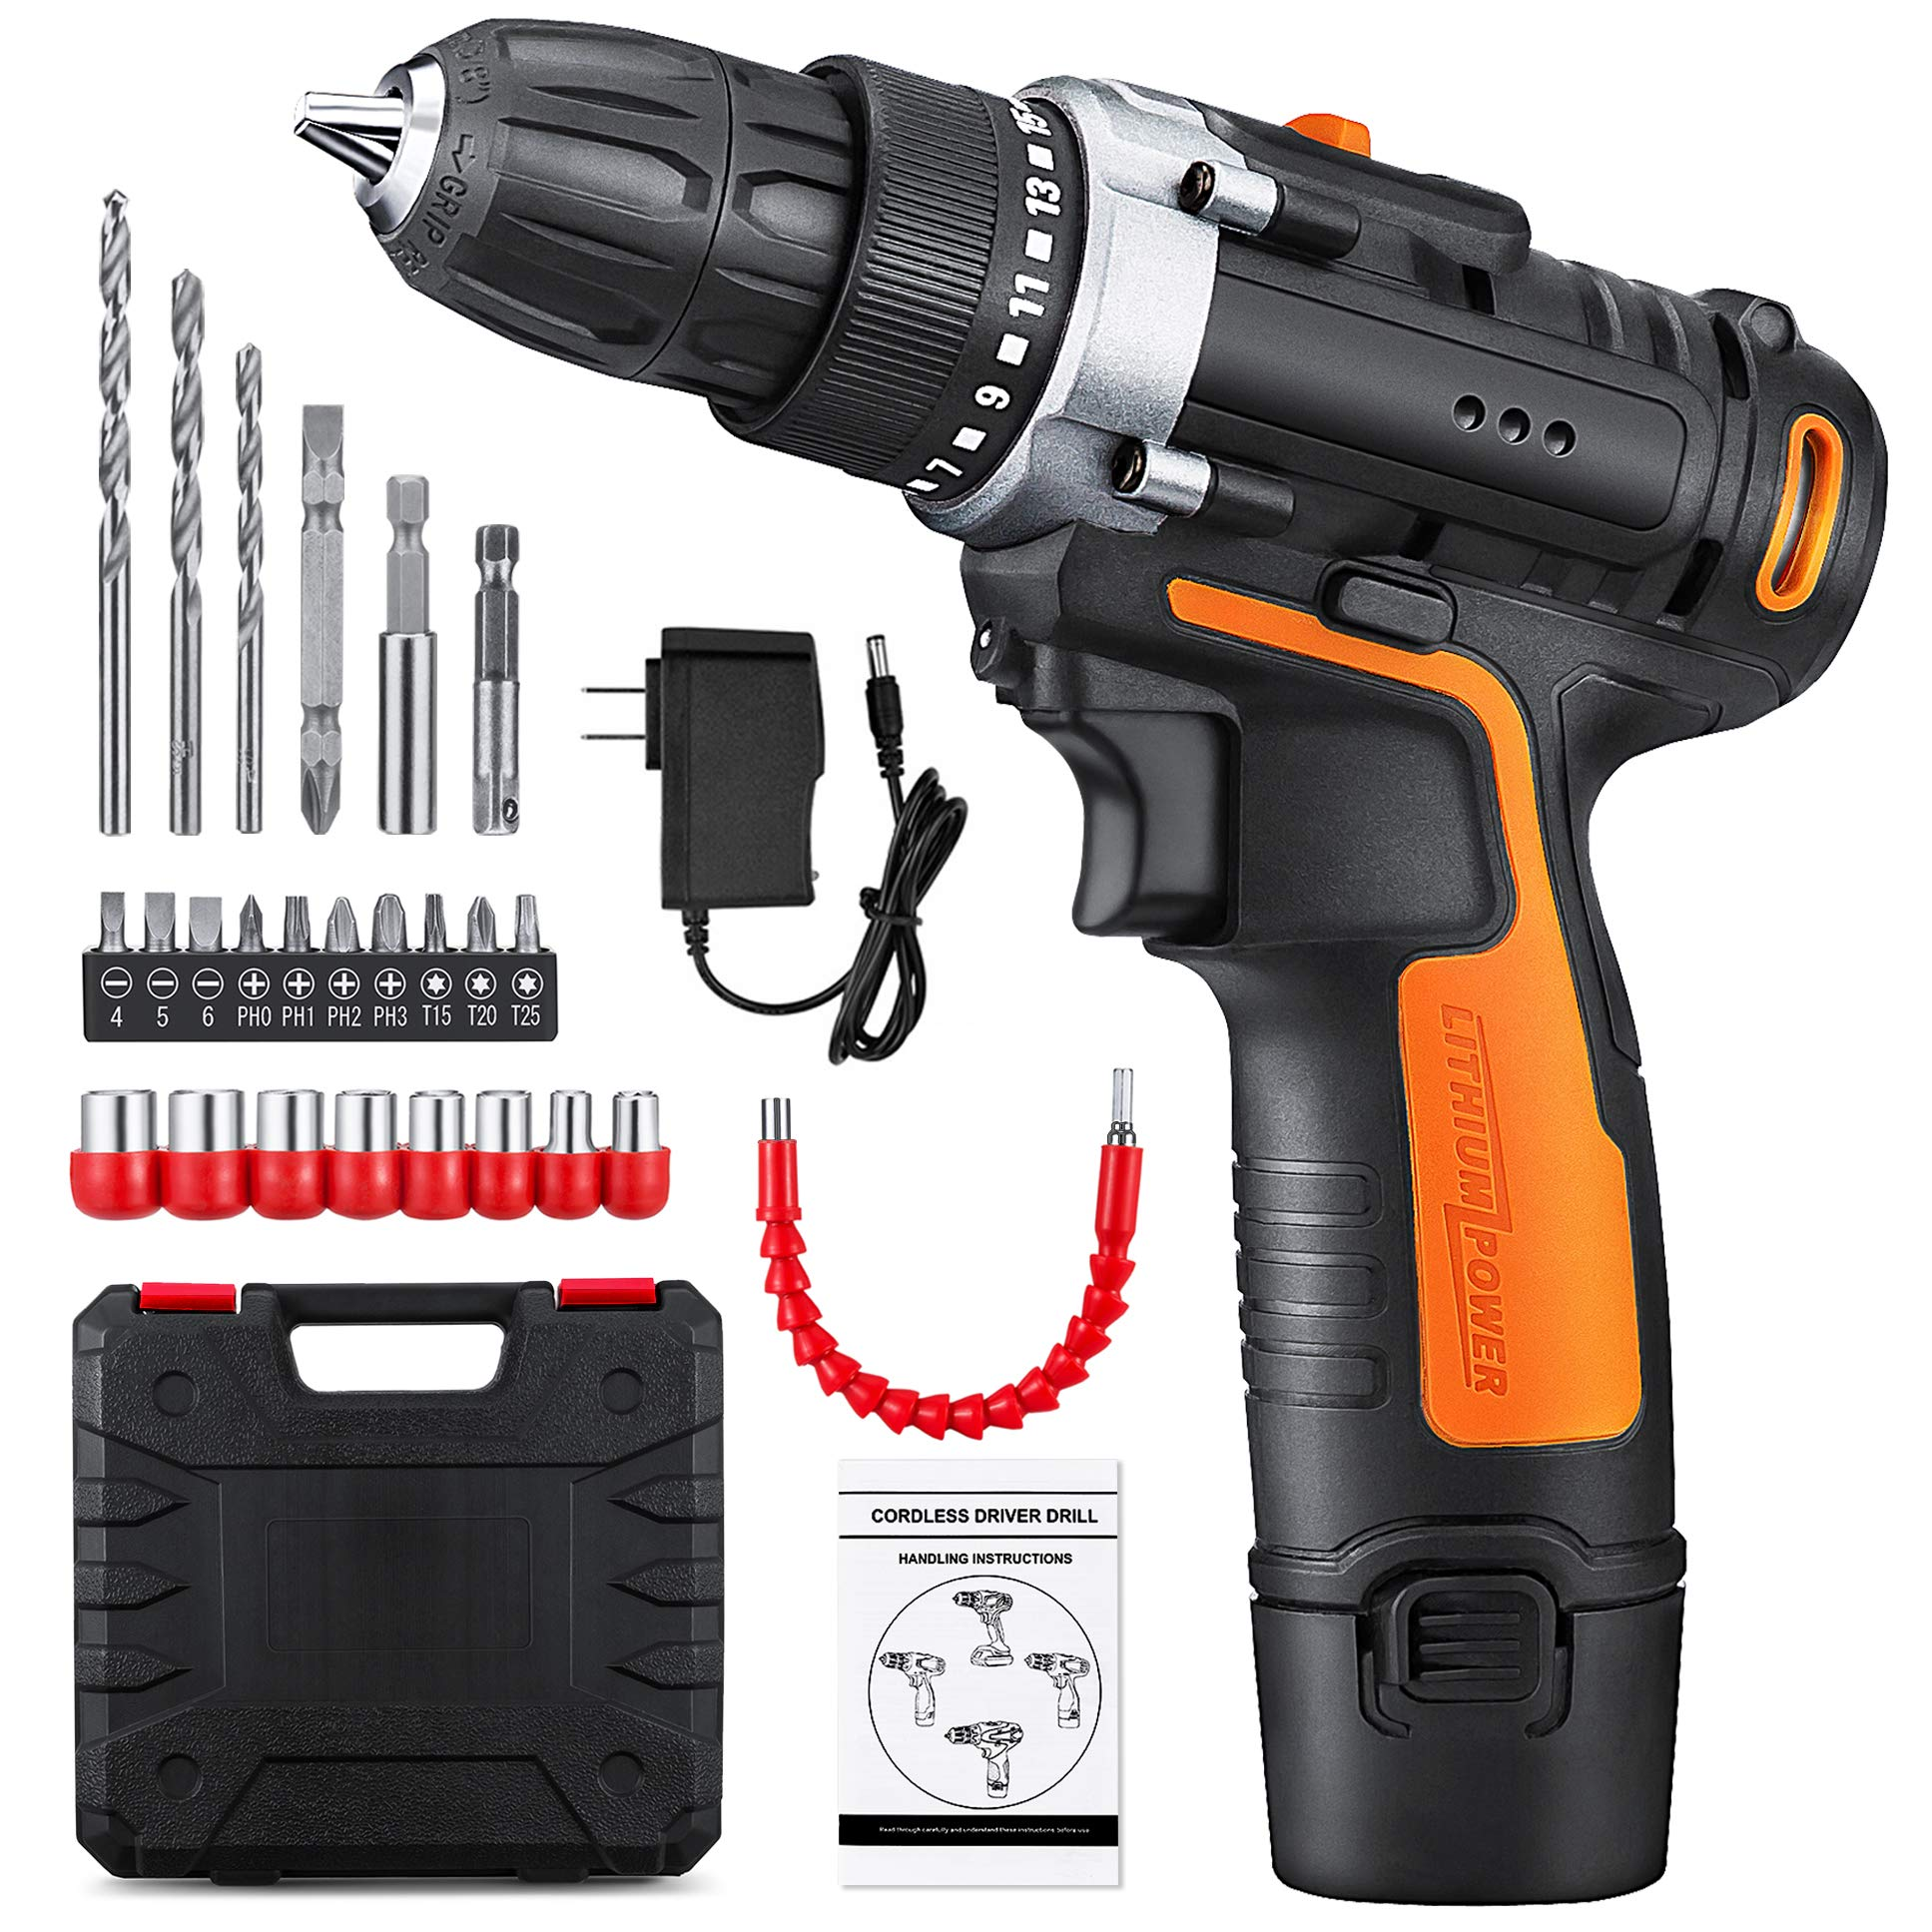 YIMALER 12V Cordless Drill Driver Set with 2.0Ah Lithium-Ion Battery, Max Torque 265 In-Lbs 2 Variable Speed 1 Hour Fast Charger 15+1 Position LED light, Drill Tool Combo Kit with 26 Accessories